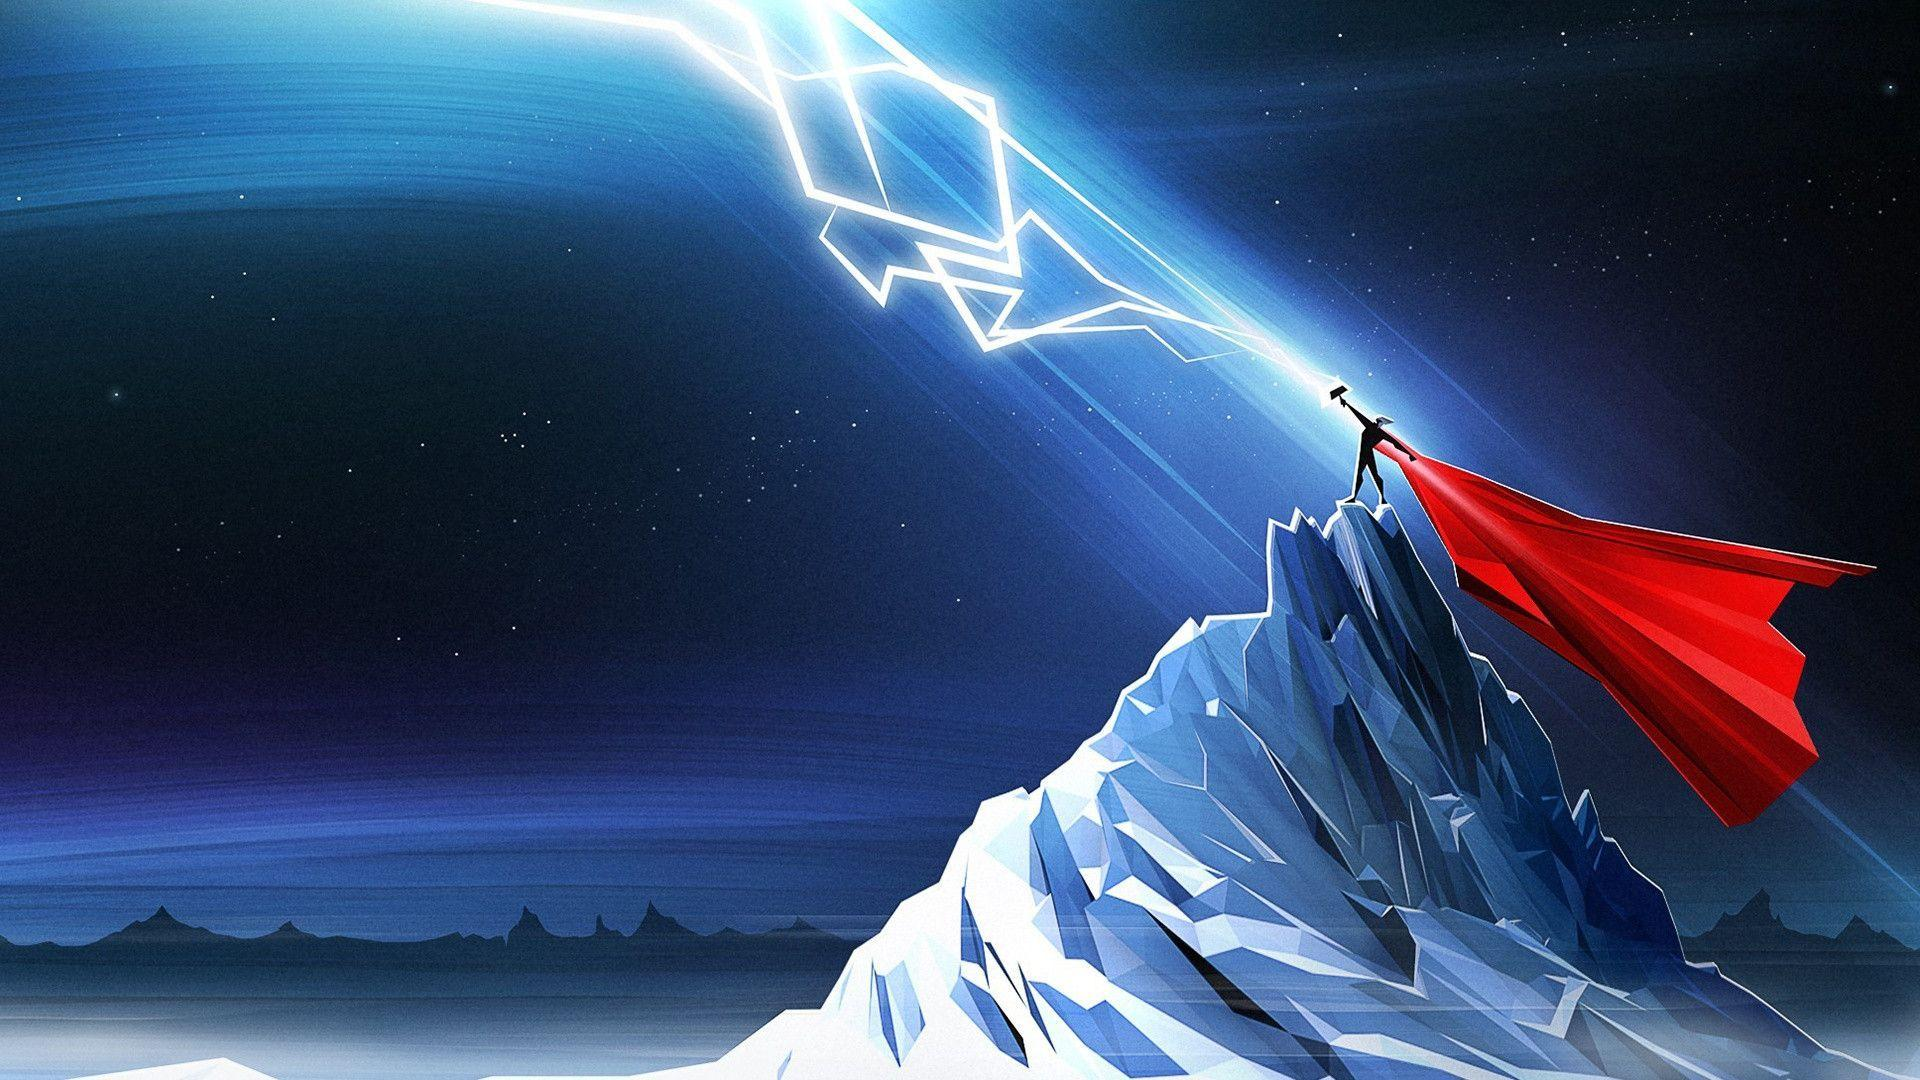 Hammer of thor wallpapers wallpaper cave - Thor hammer hd pics ...